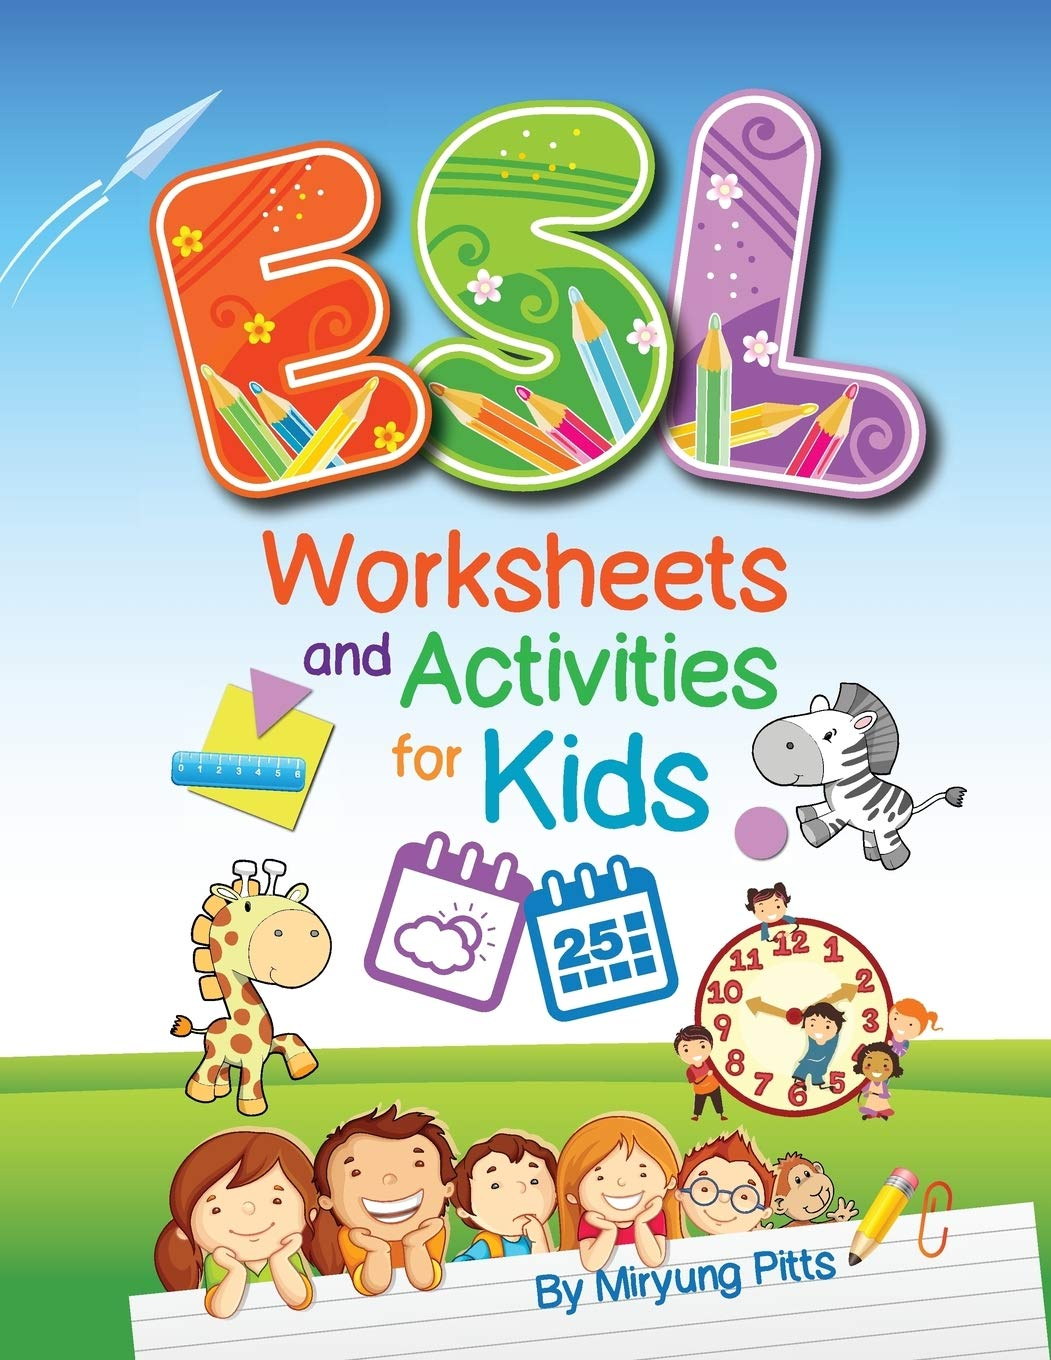 - ESL Worksheets And Activities For Kids: Amazon.ca: Pitts, Miryung